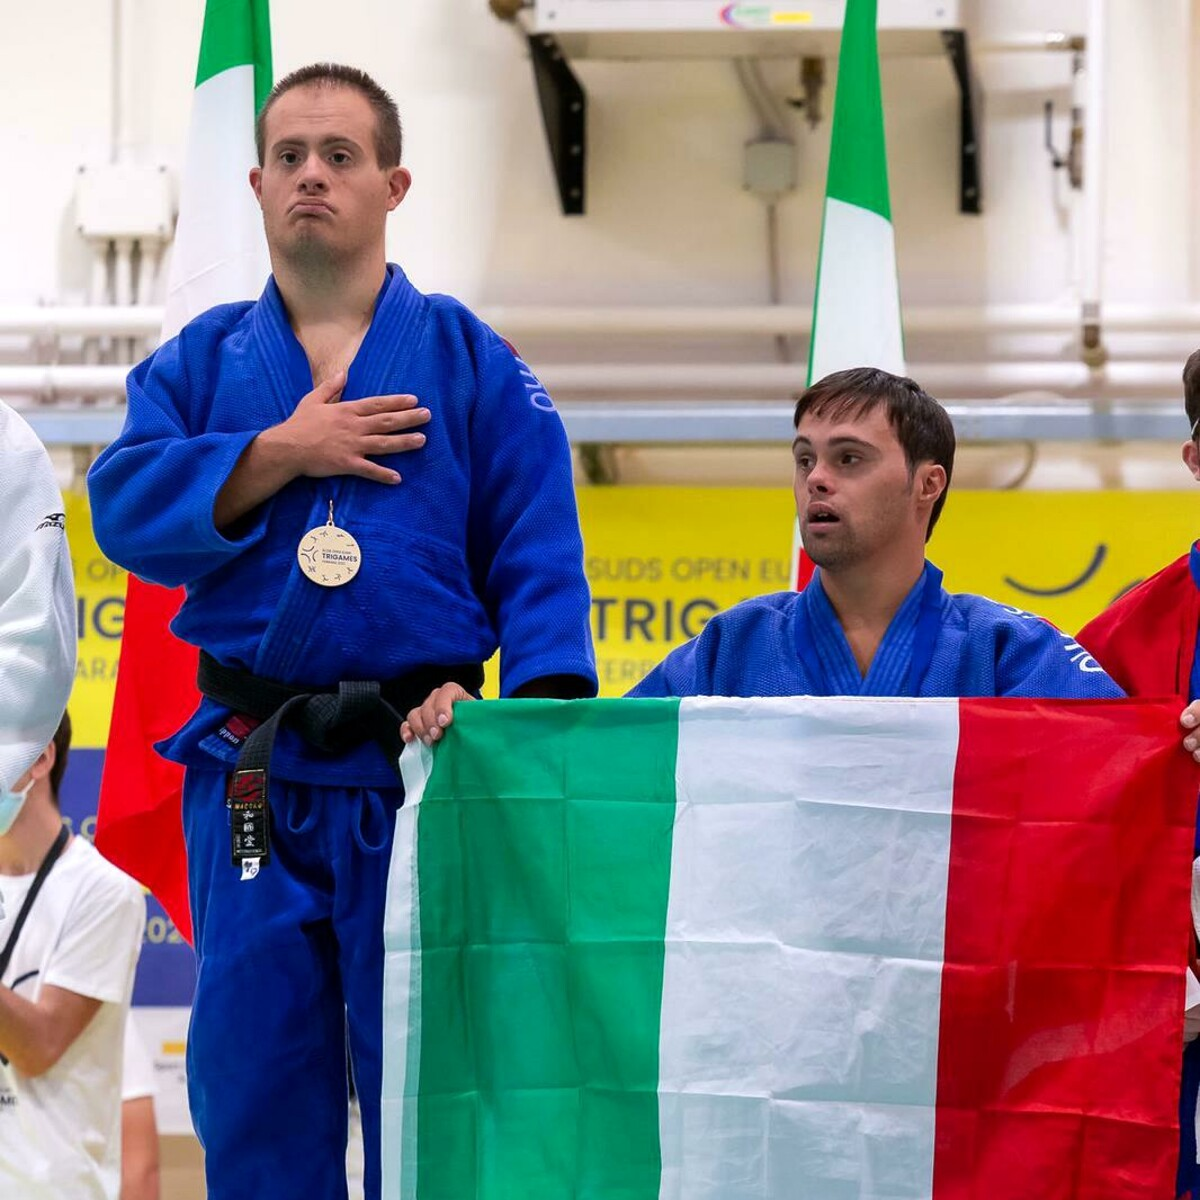 Euro Trigames 2021, the Palermo best judokas and Zarbo on the roof of Europe thumbnail